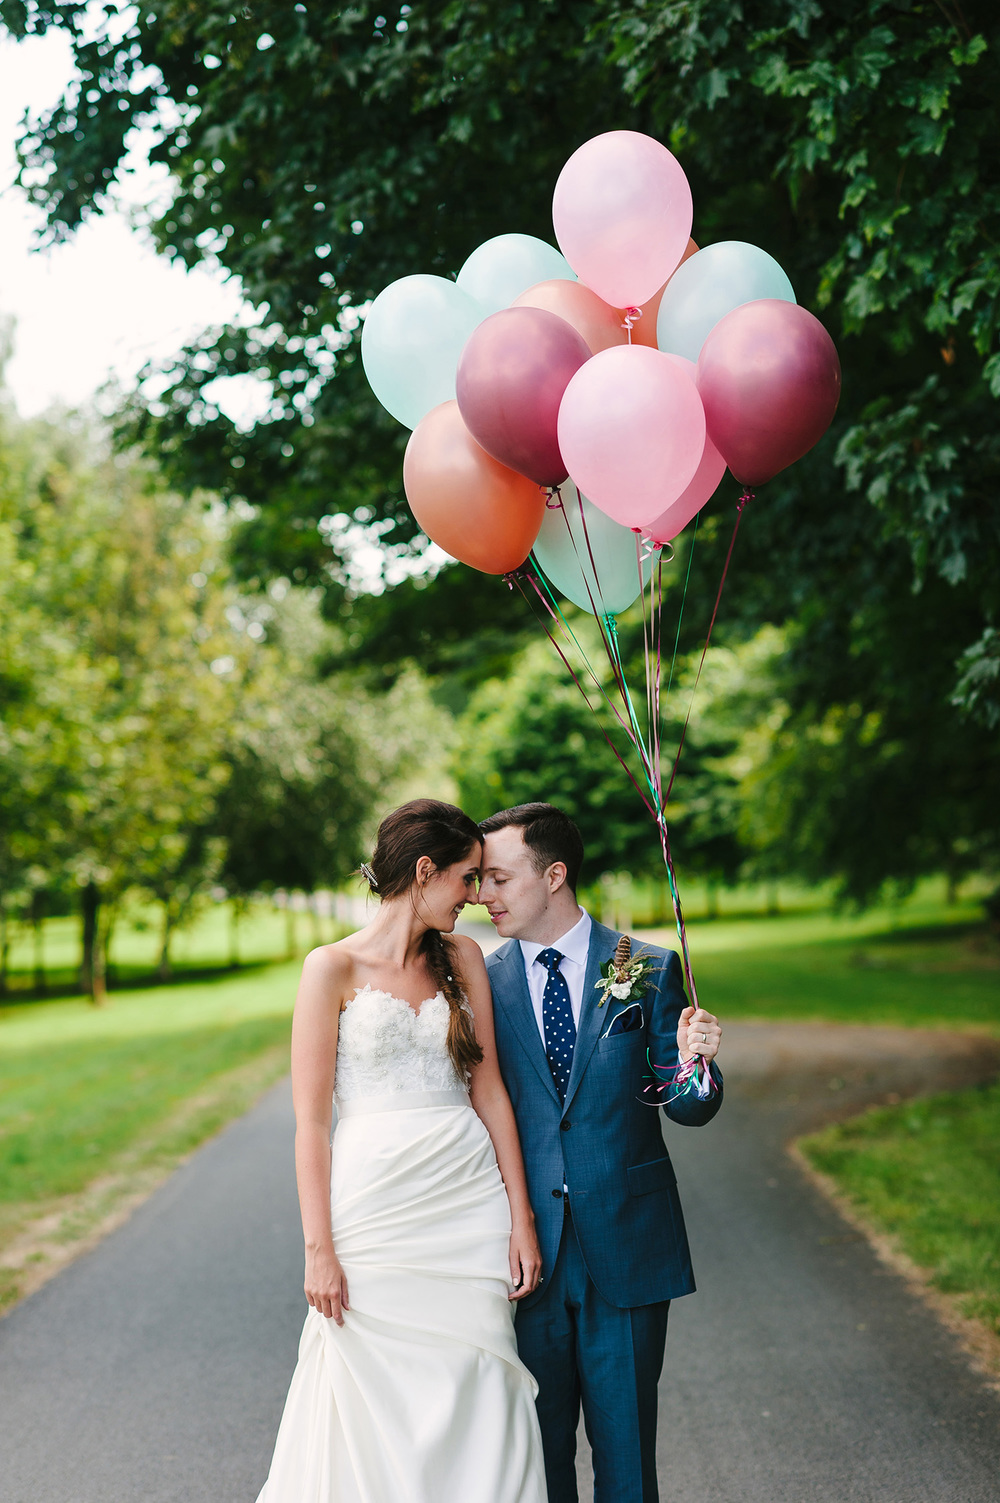 Irish Wedding Photographers Bellinter House Wedding Holly and Barry 109.JPG